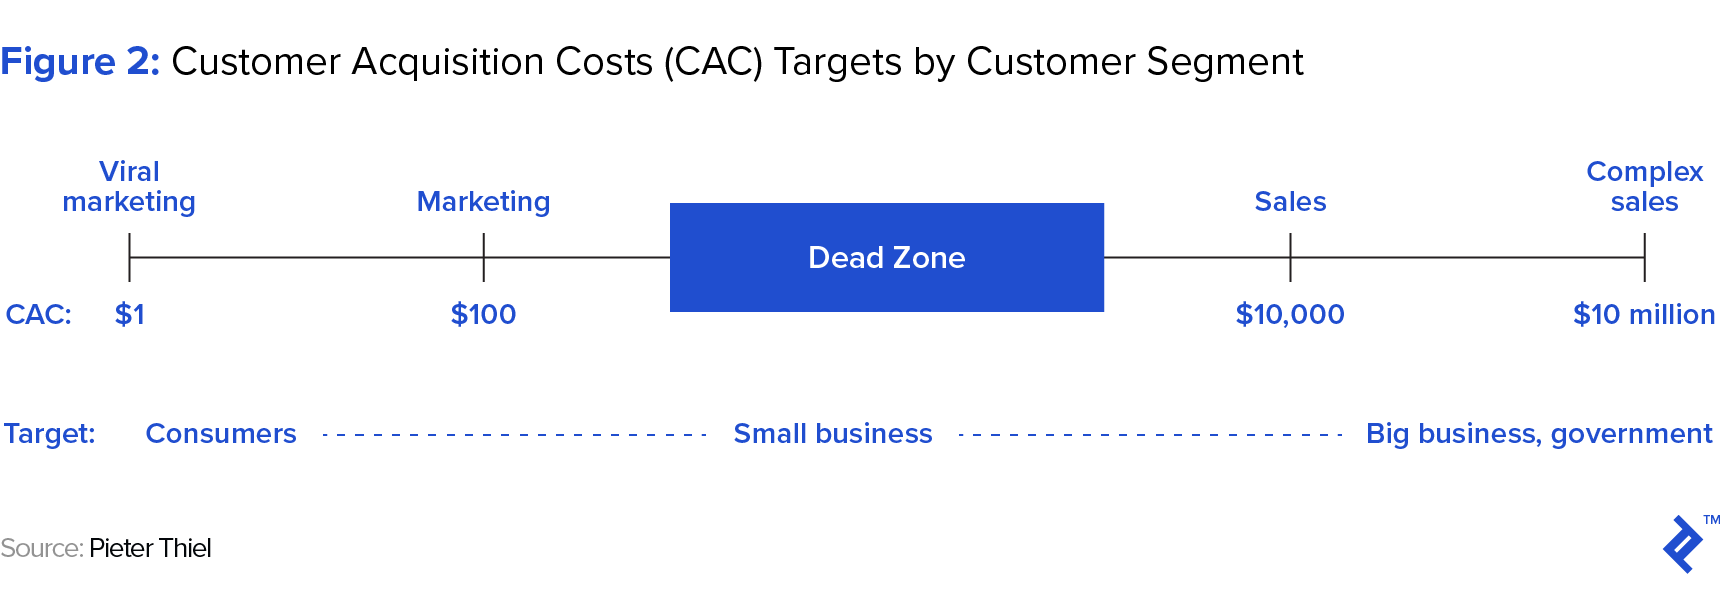 diagram showing customer acquisition cost targets by customer segment